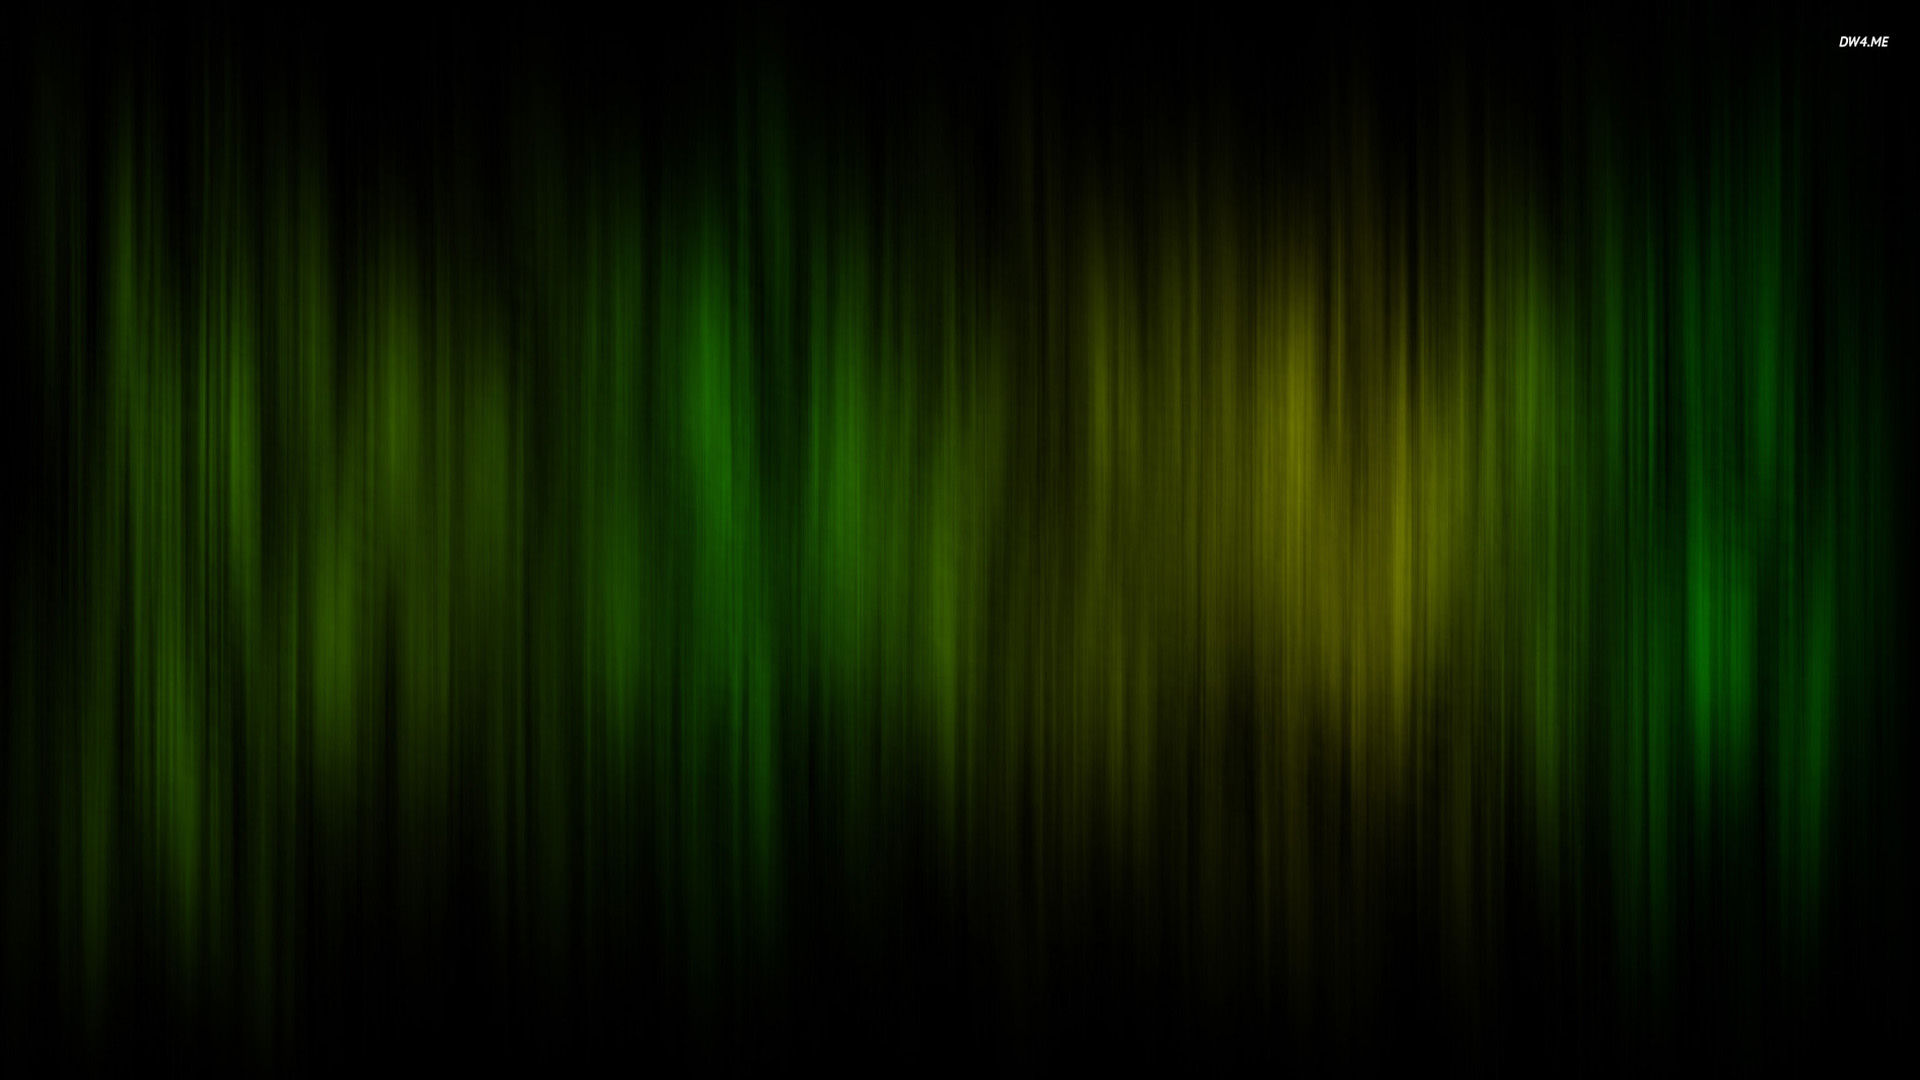 Dark Green Wallpaper 25, Green Backgrounds, Pictures and images